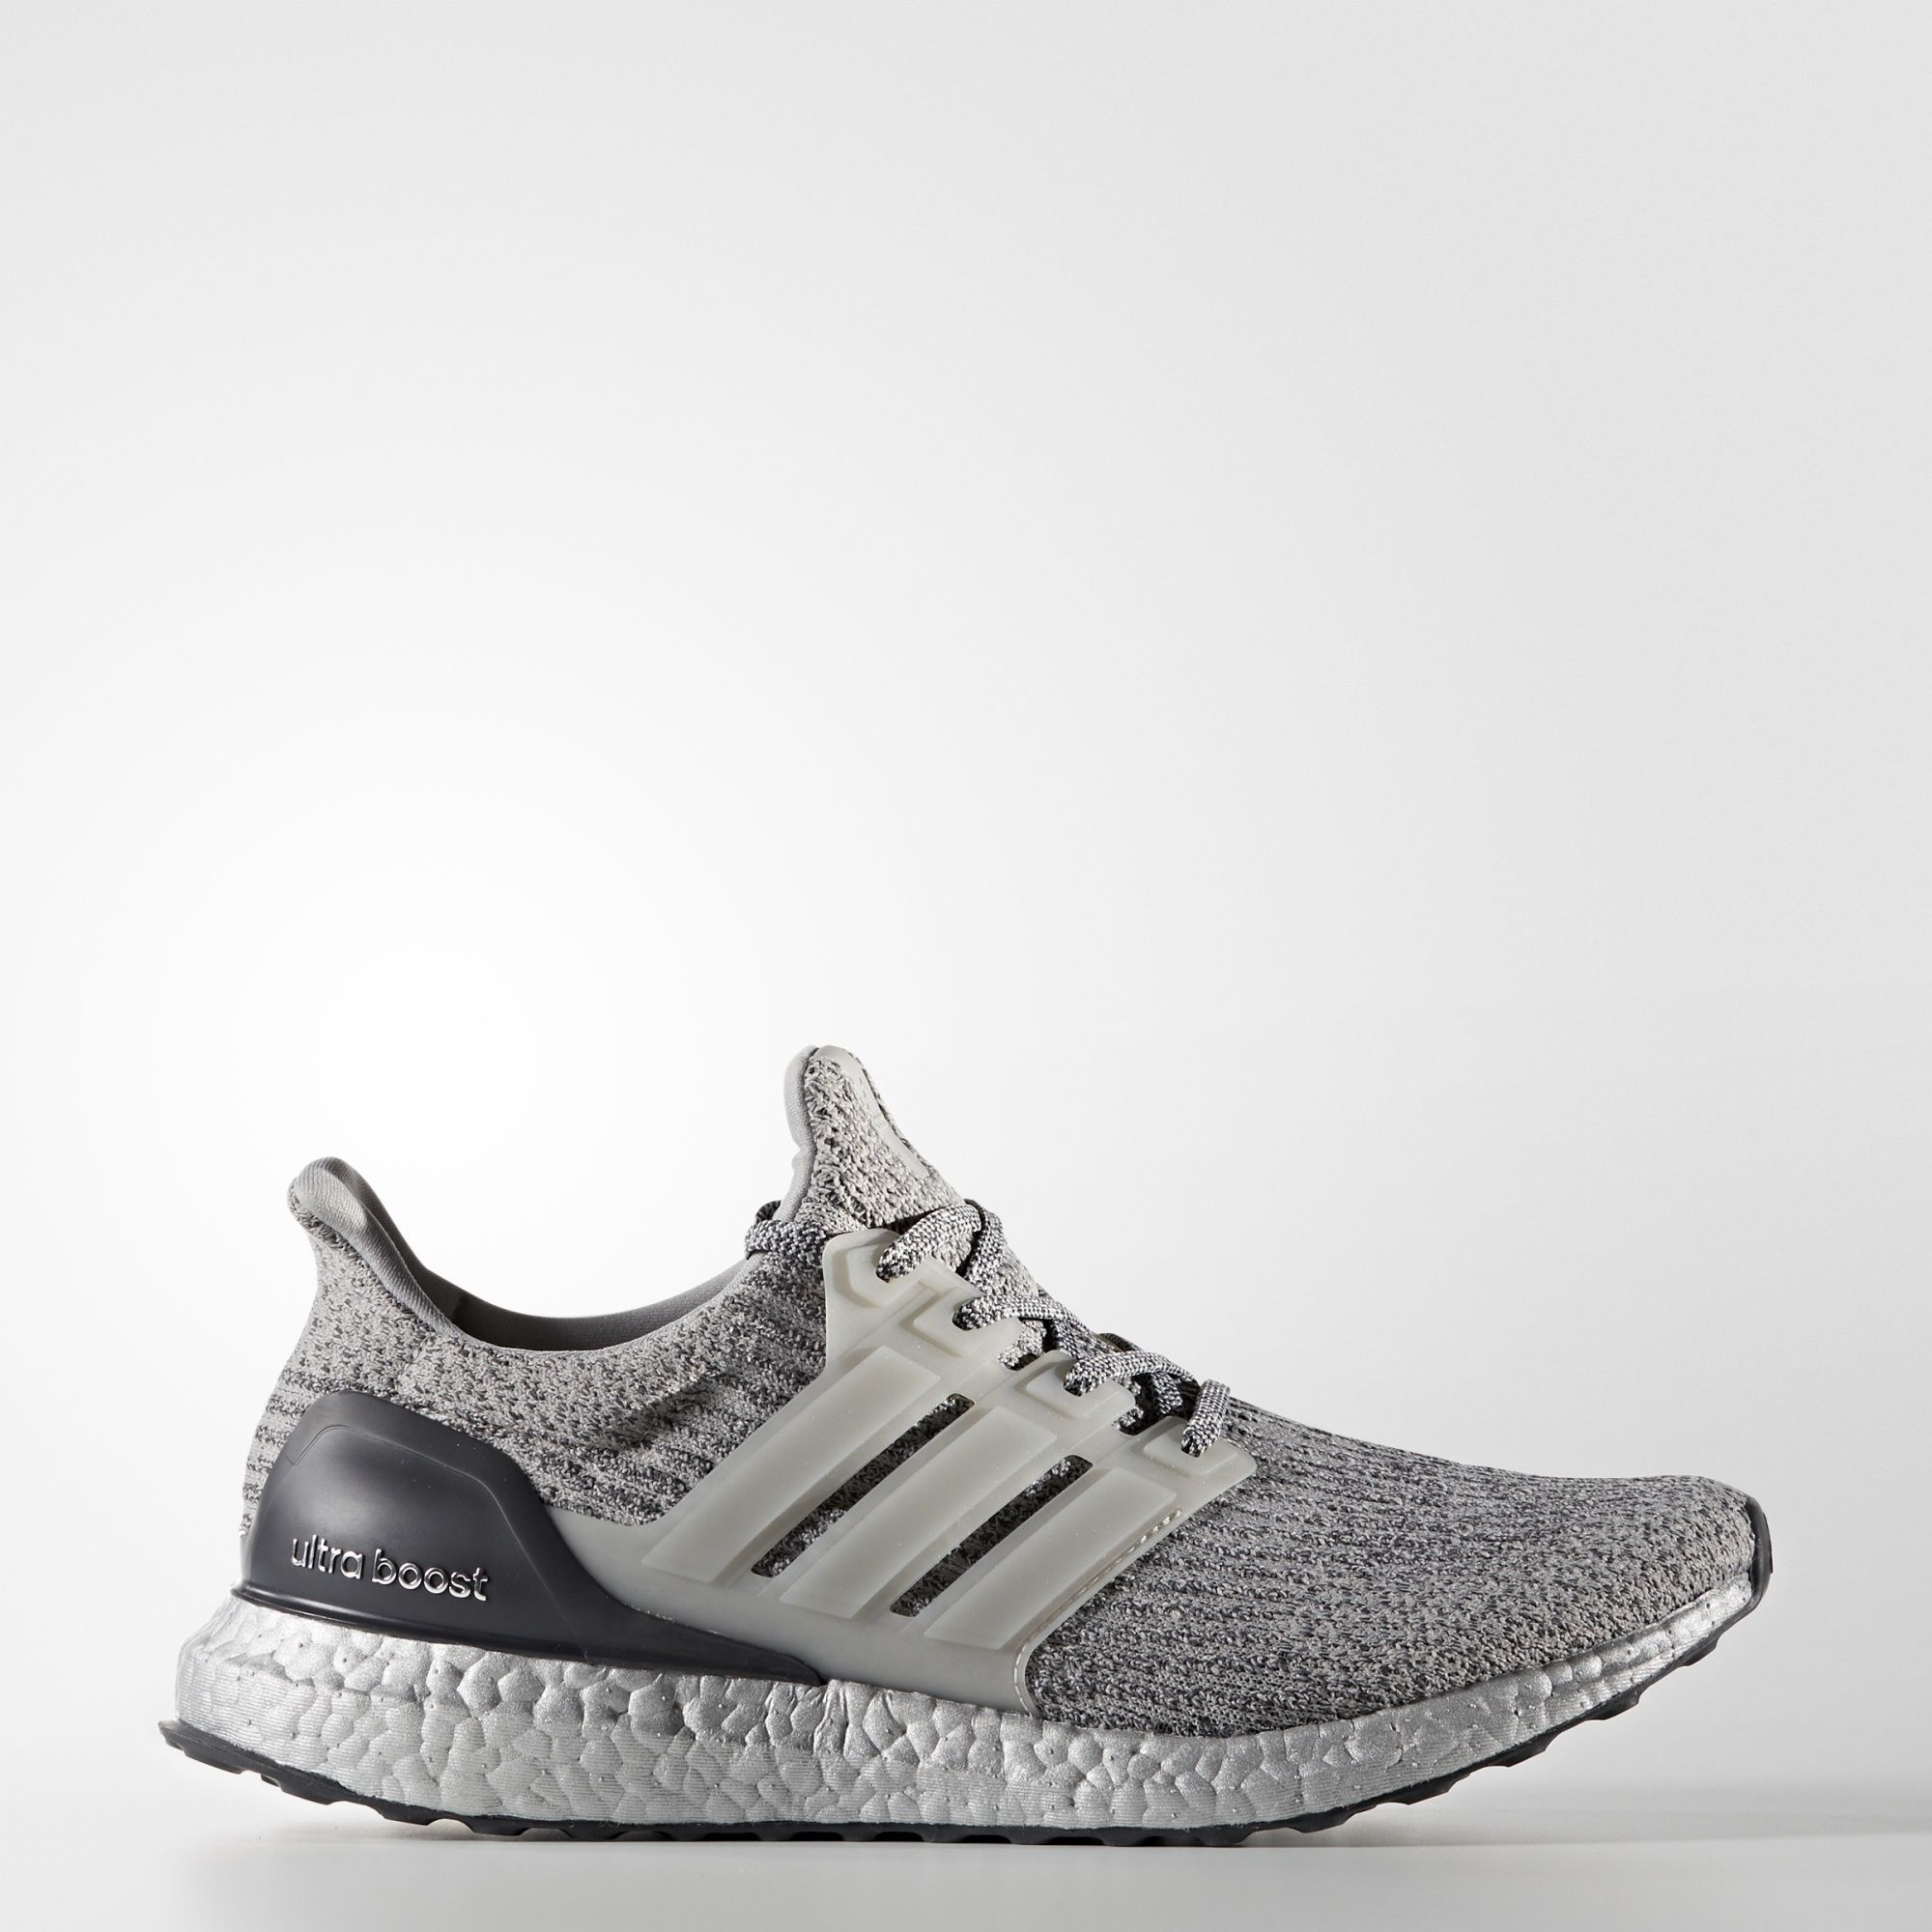 adidas UltraBOOST 3.0 Clear Grey W/ On Foot